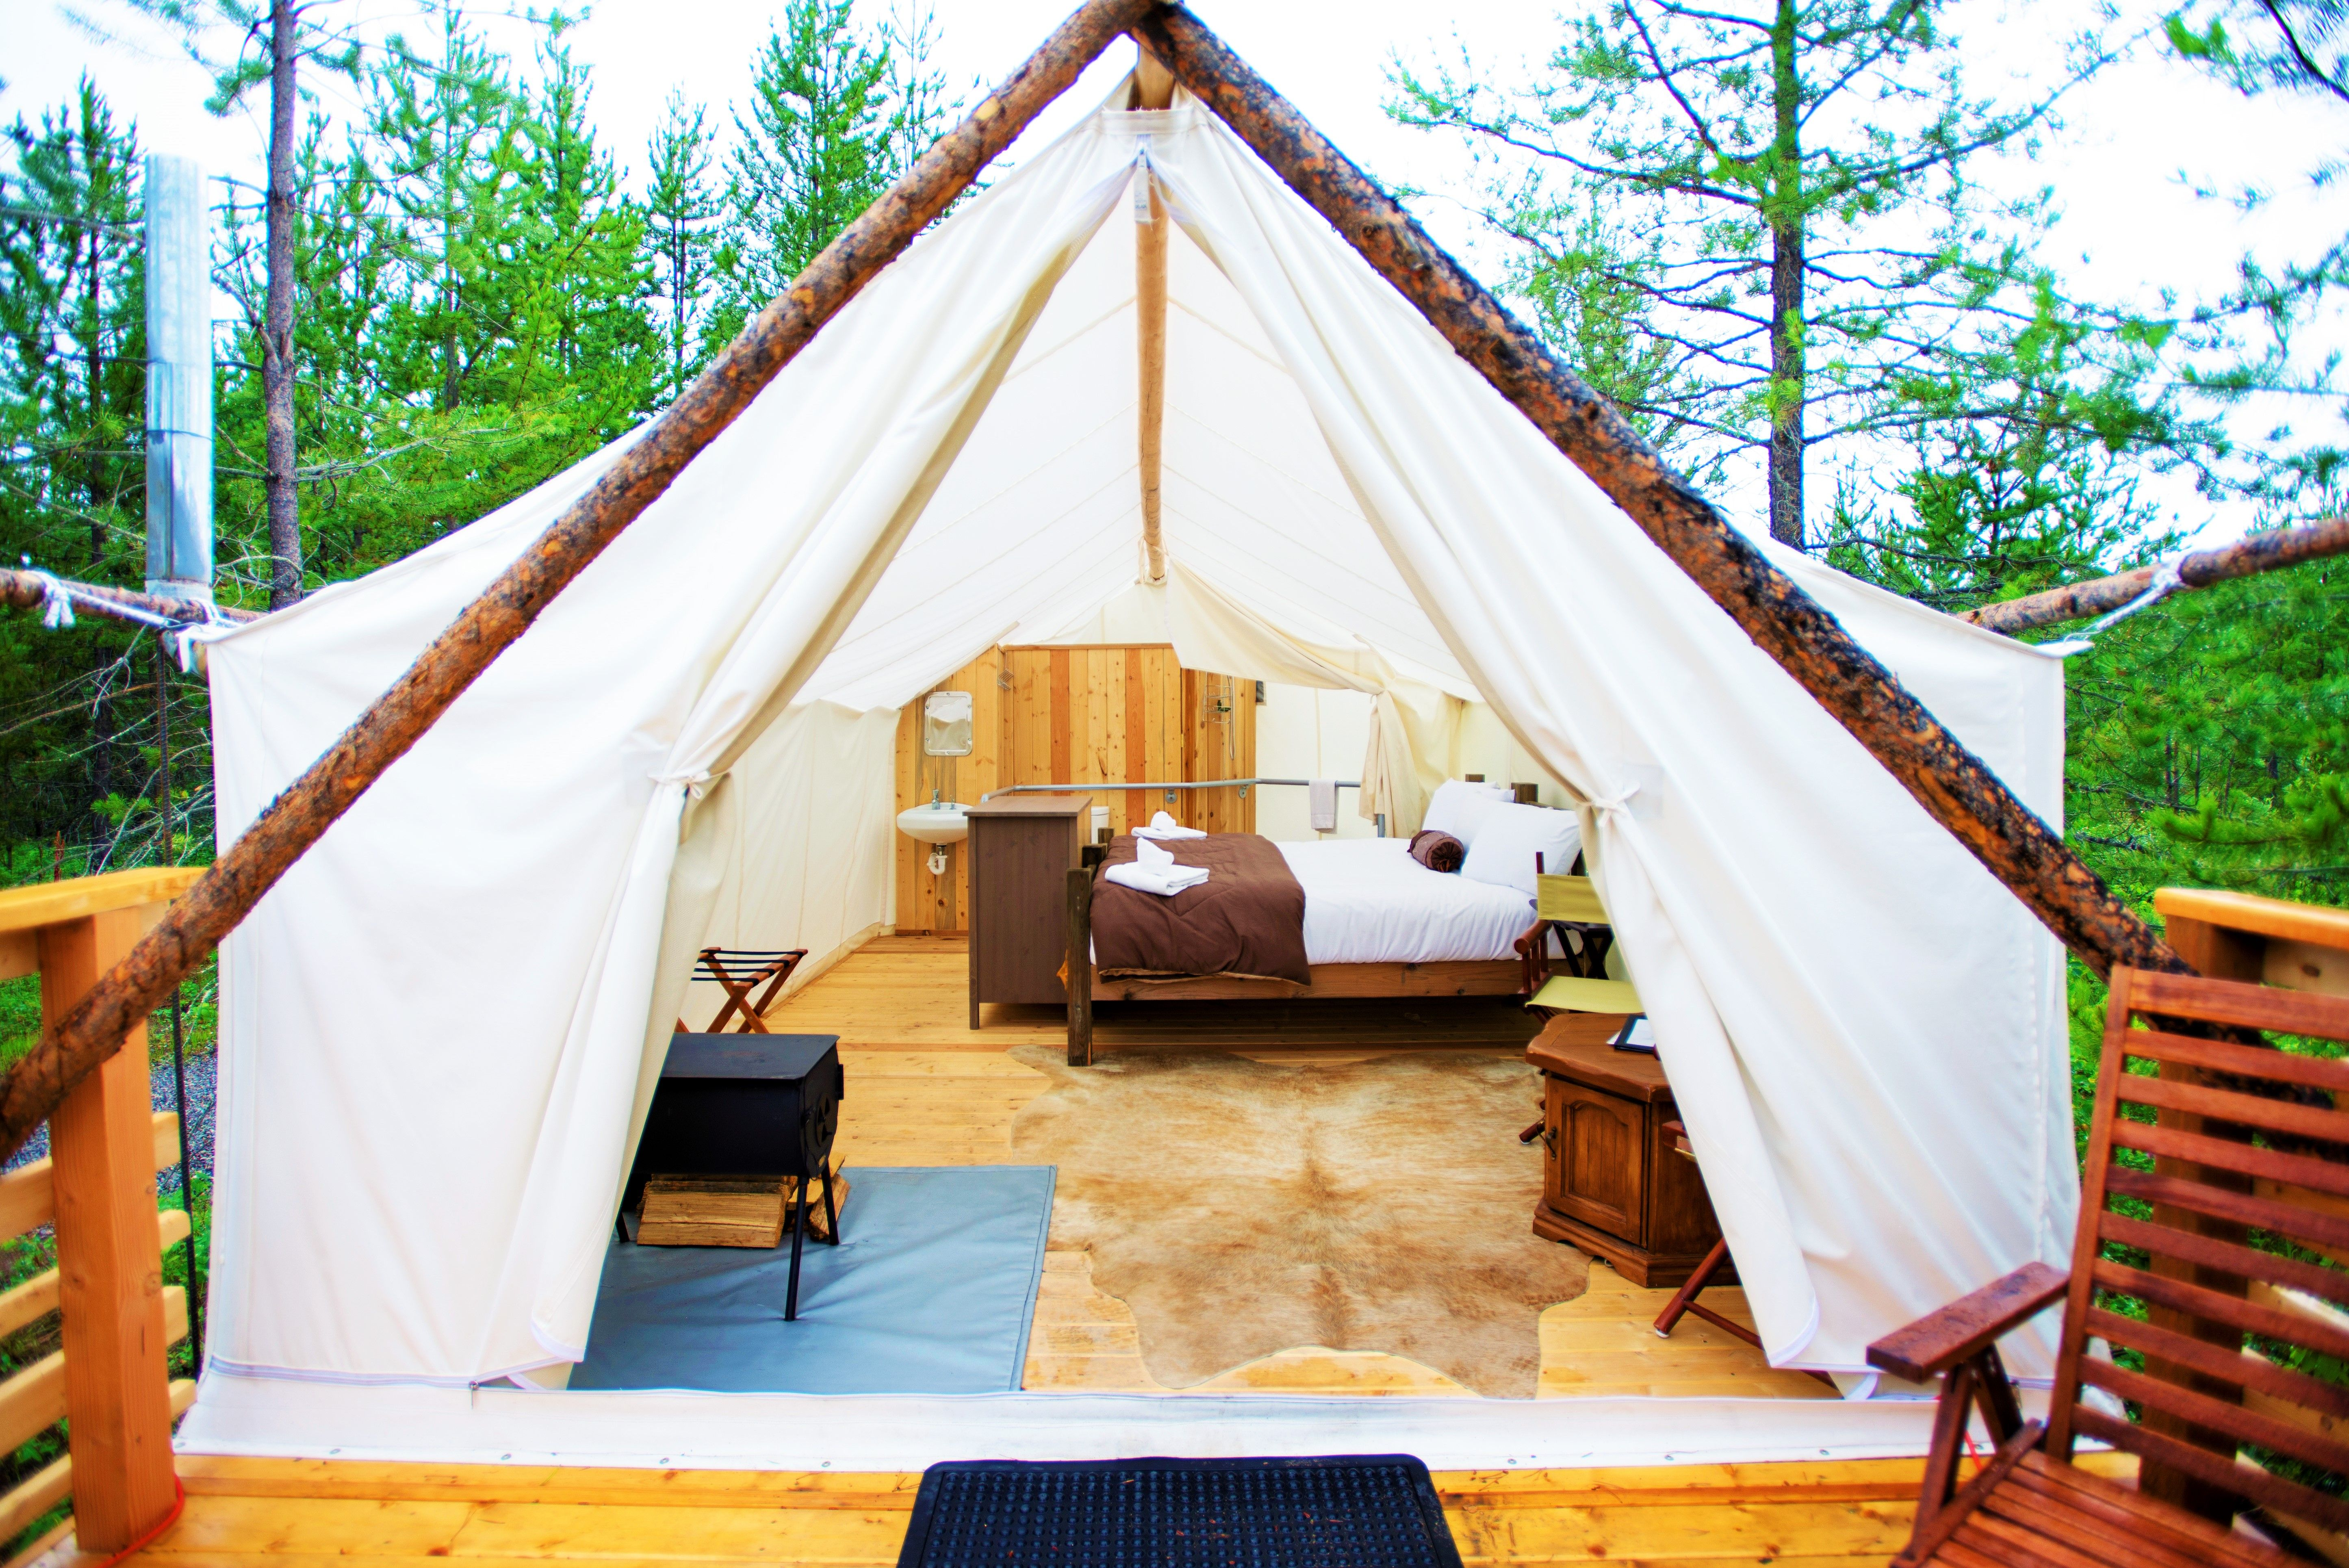 Glacier Under Canvas Is Located 7 Miles From The Breathtaking Glacier National Park Where Peaks Touch The Sky Glaciers Mo Luxury Camping Go Glamping Glamping